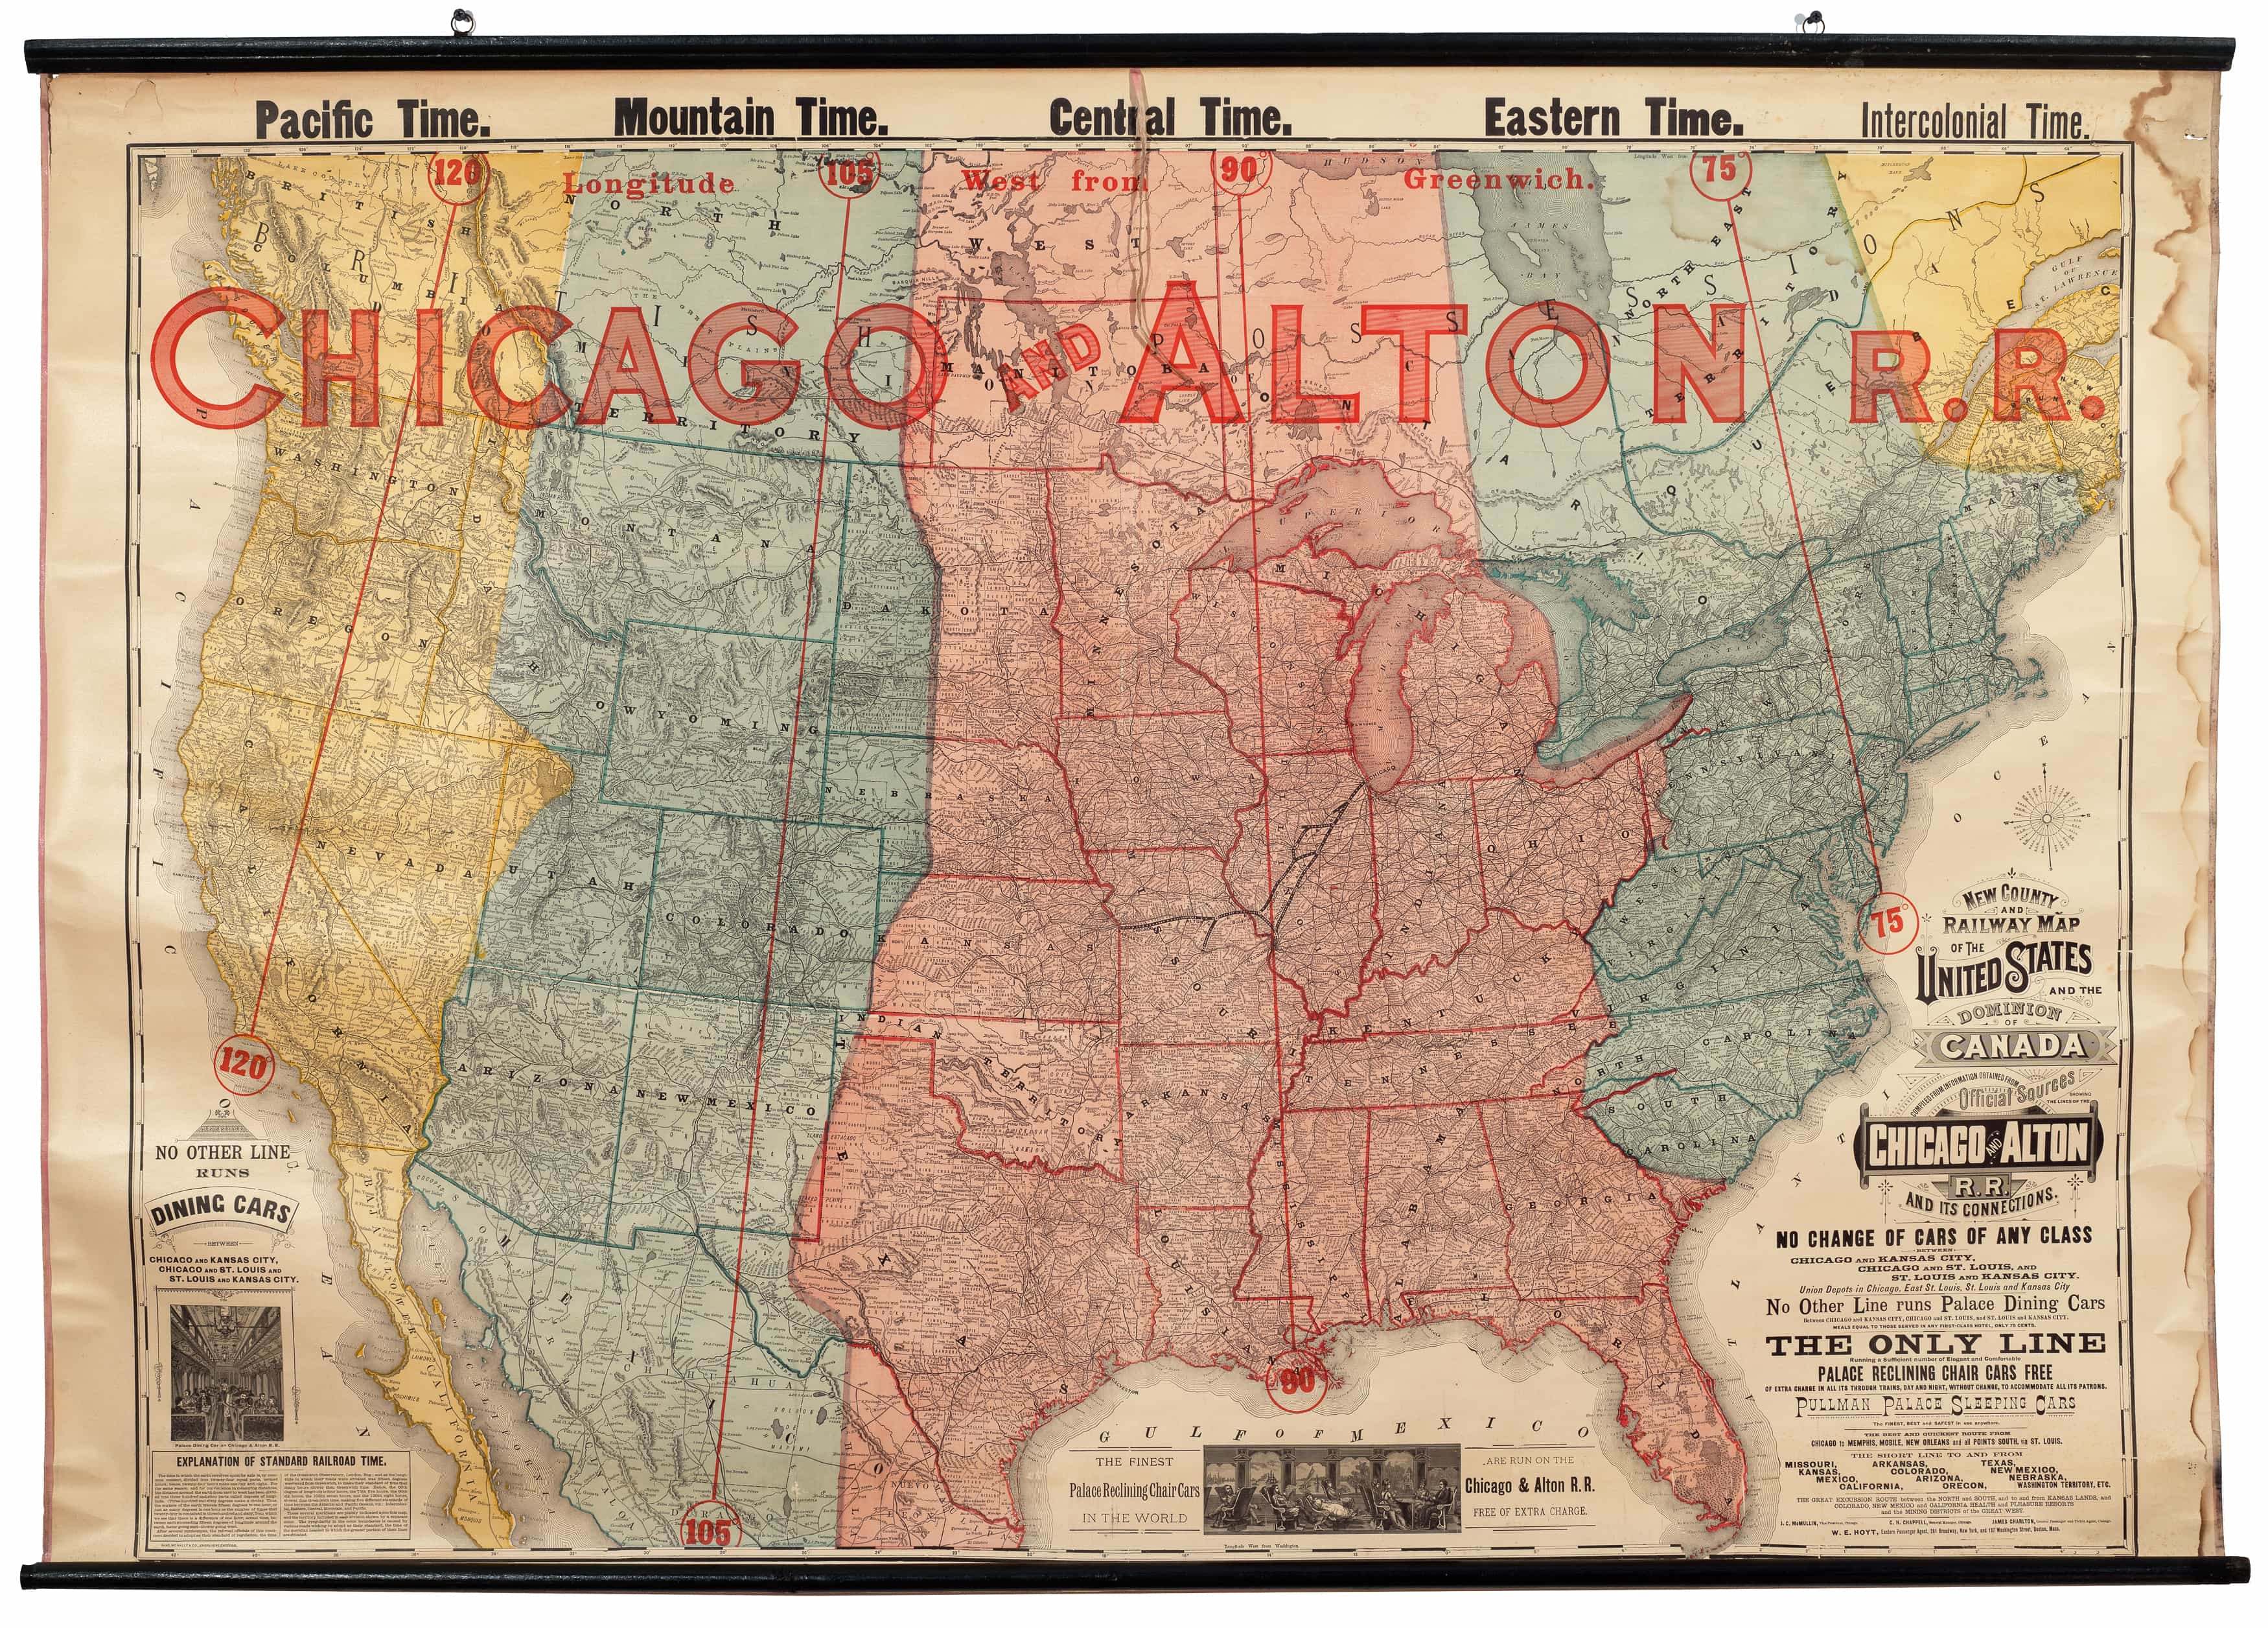 Striking railroad map featuring new American time zones